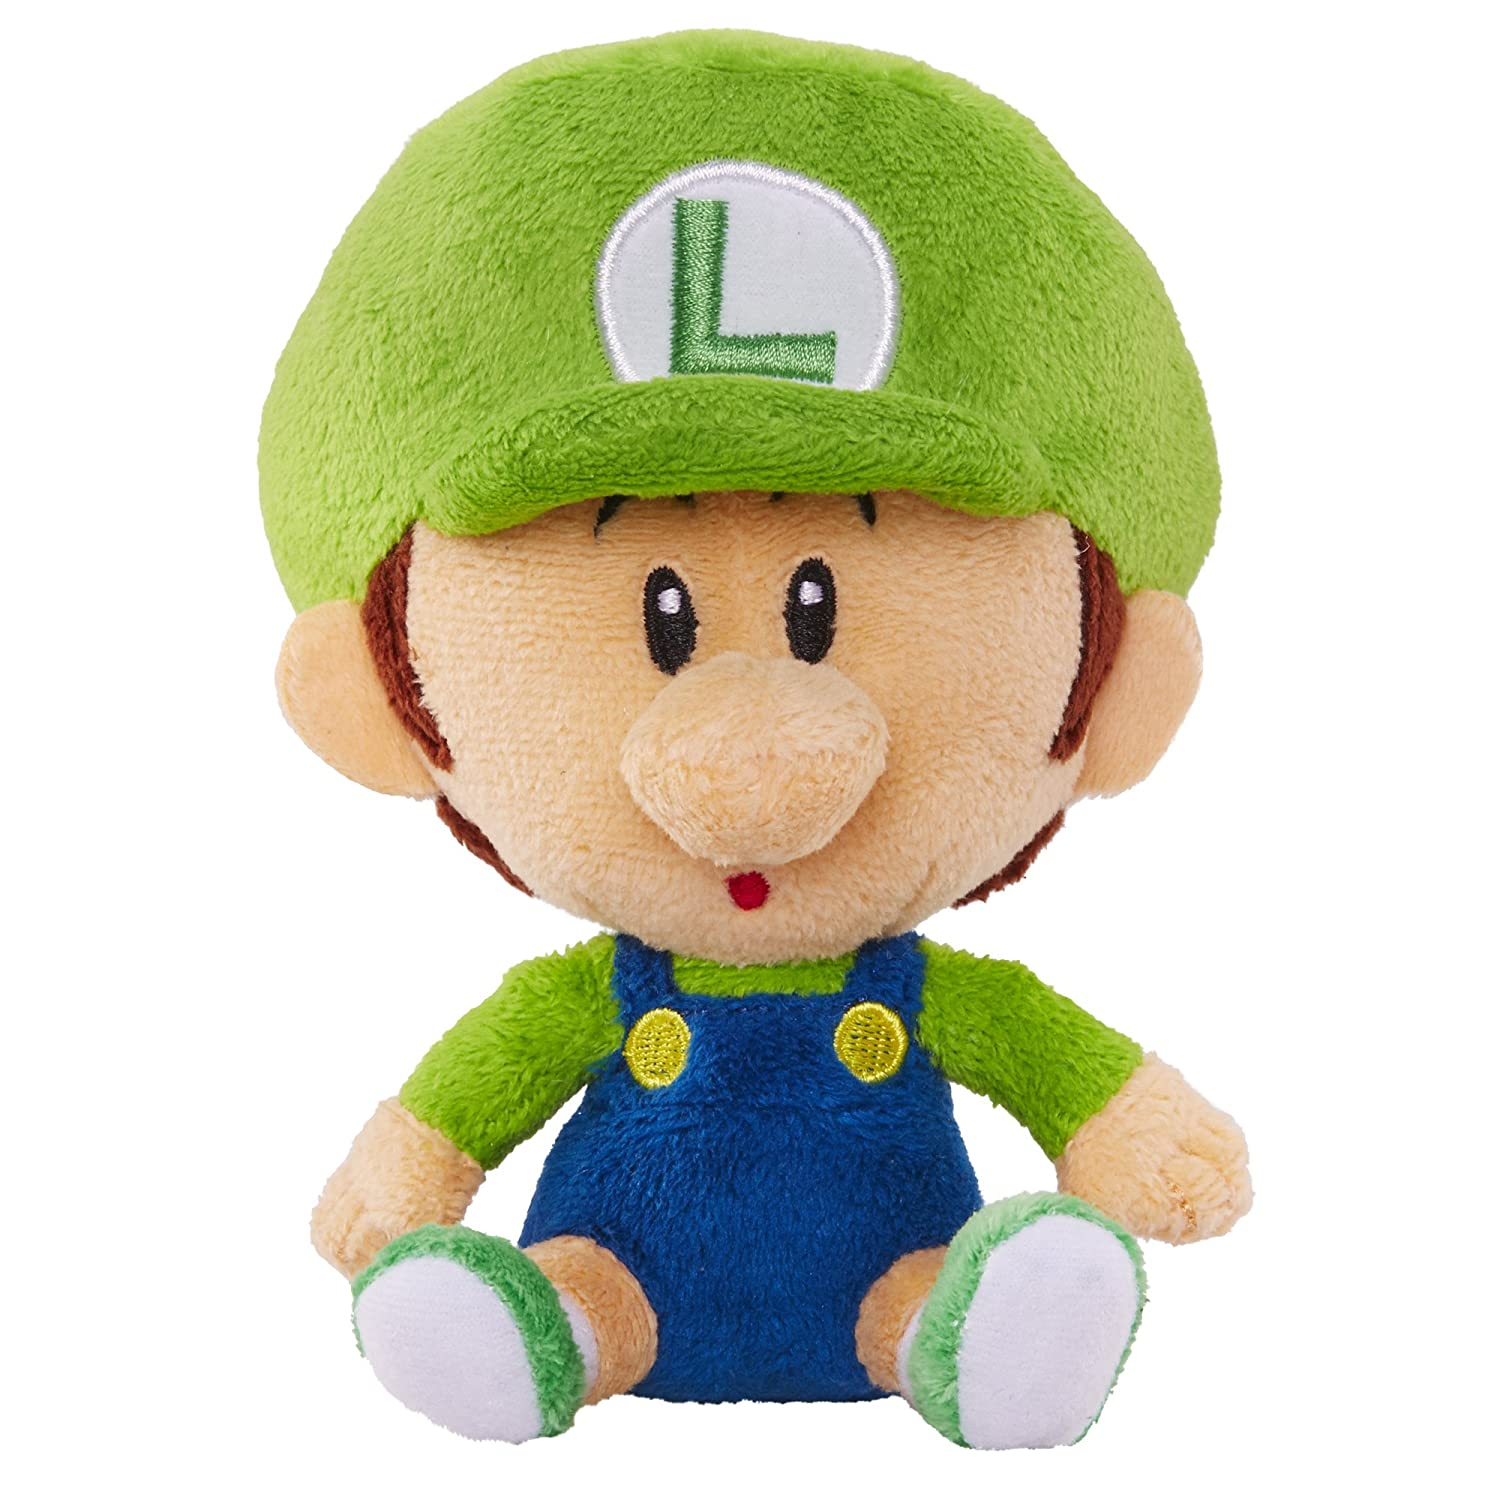 amazoncom world of nintendo mario bros u baby luigi plush toys games